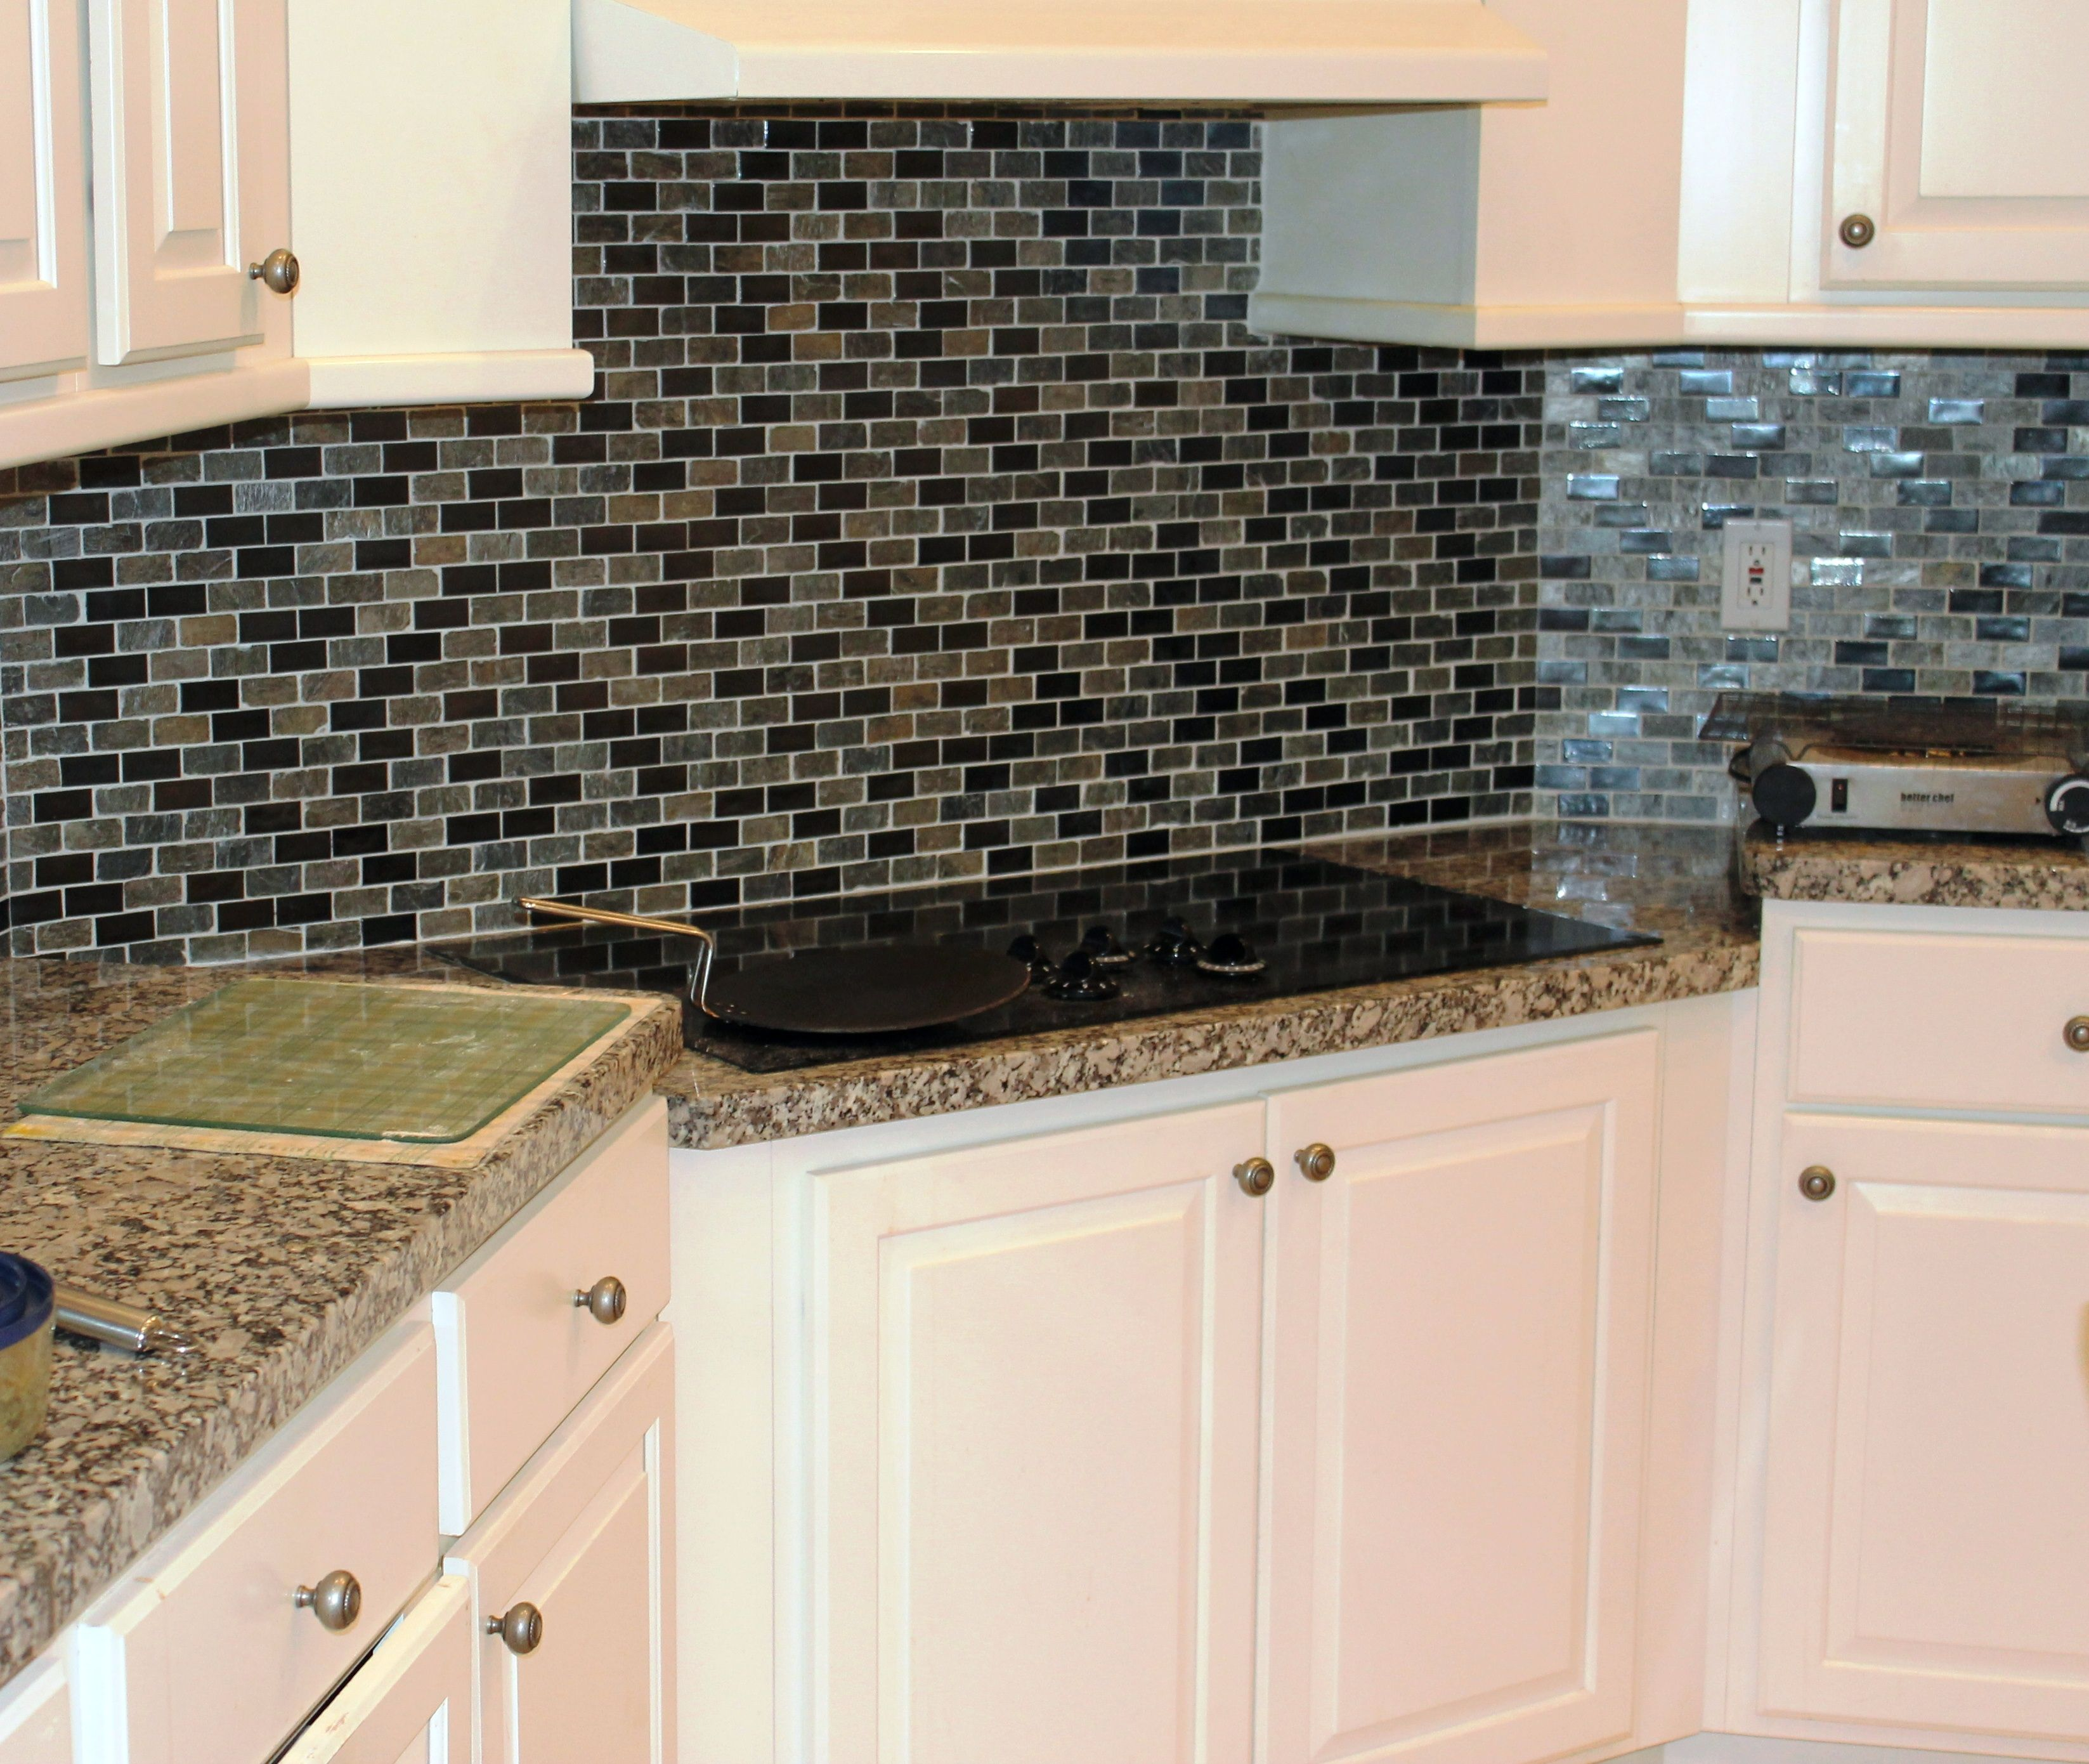 - Kitchen Backsplash. Replace The Tan Tiles With Yellow. Cozy